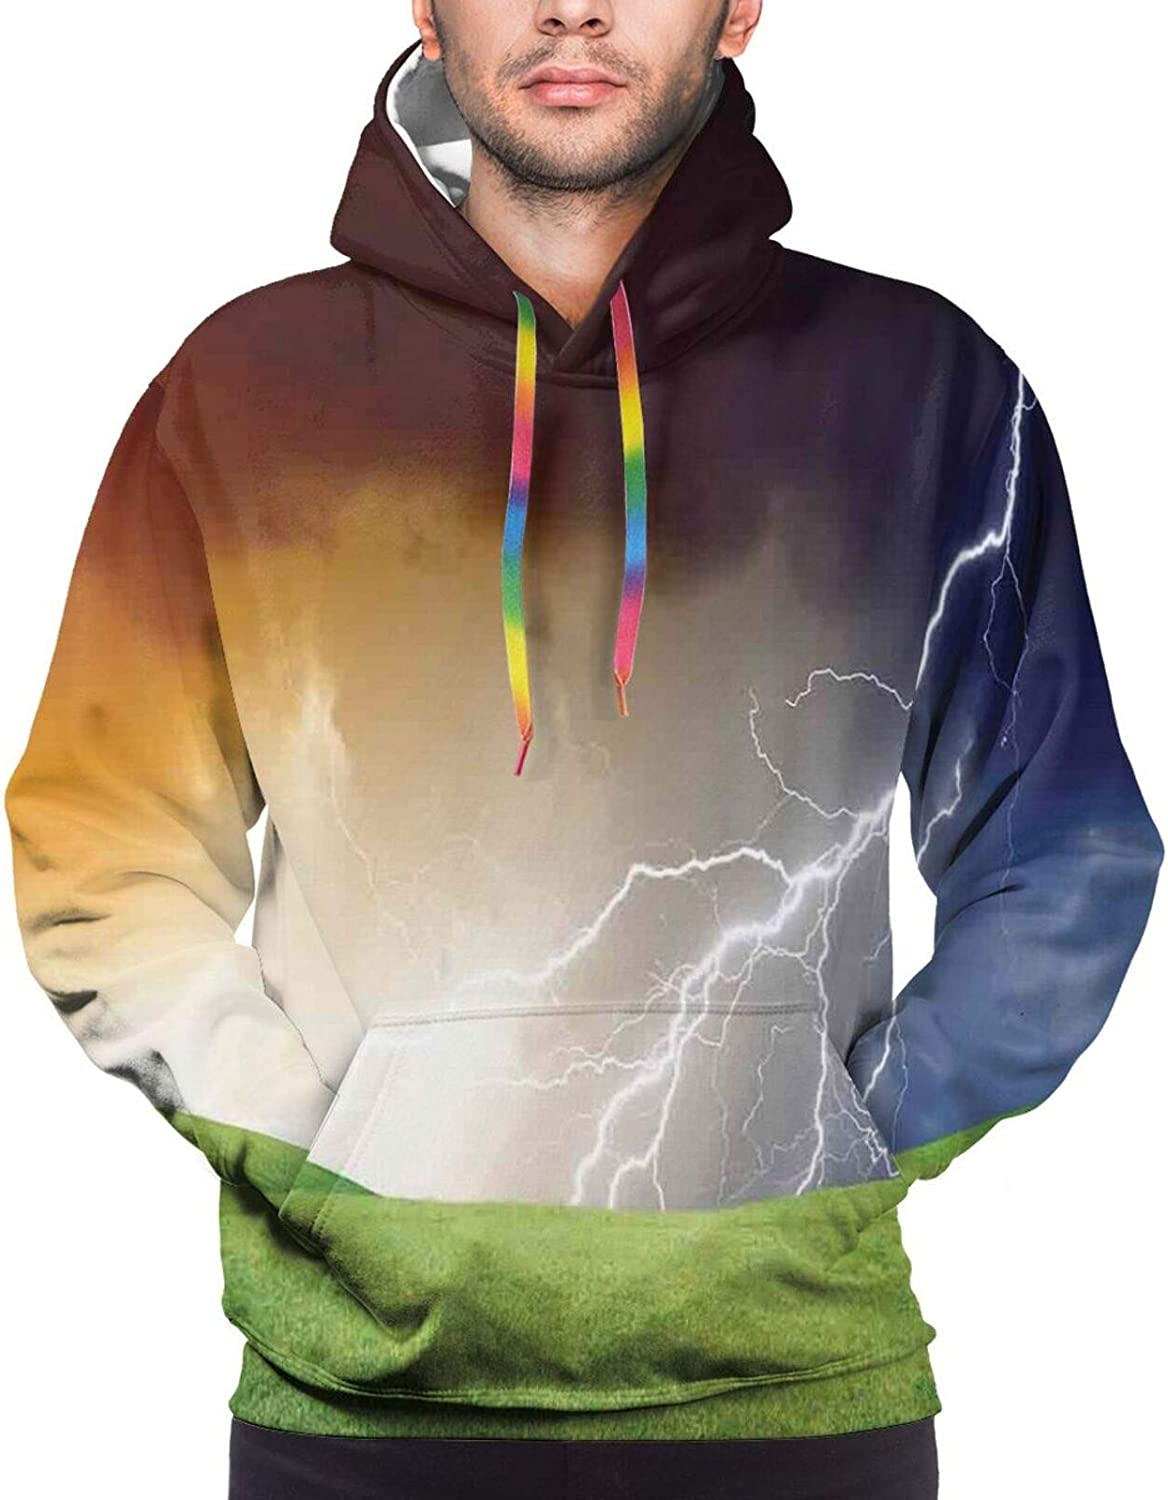 Men's Hoodies Sweatshirts,Nature Landscape with Fresh Grass Field and Thunder Flash Environmental Theme